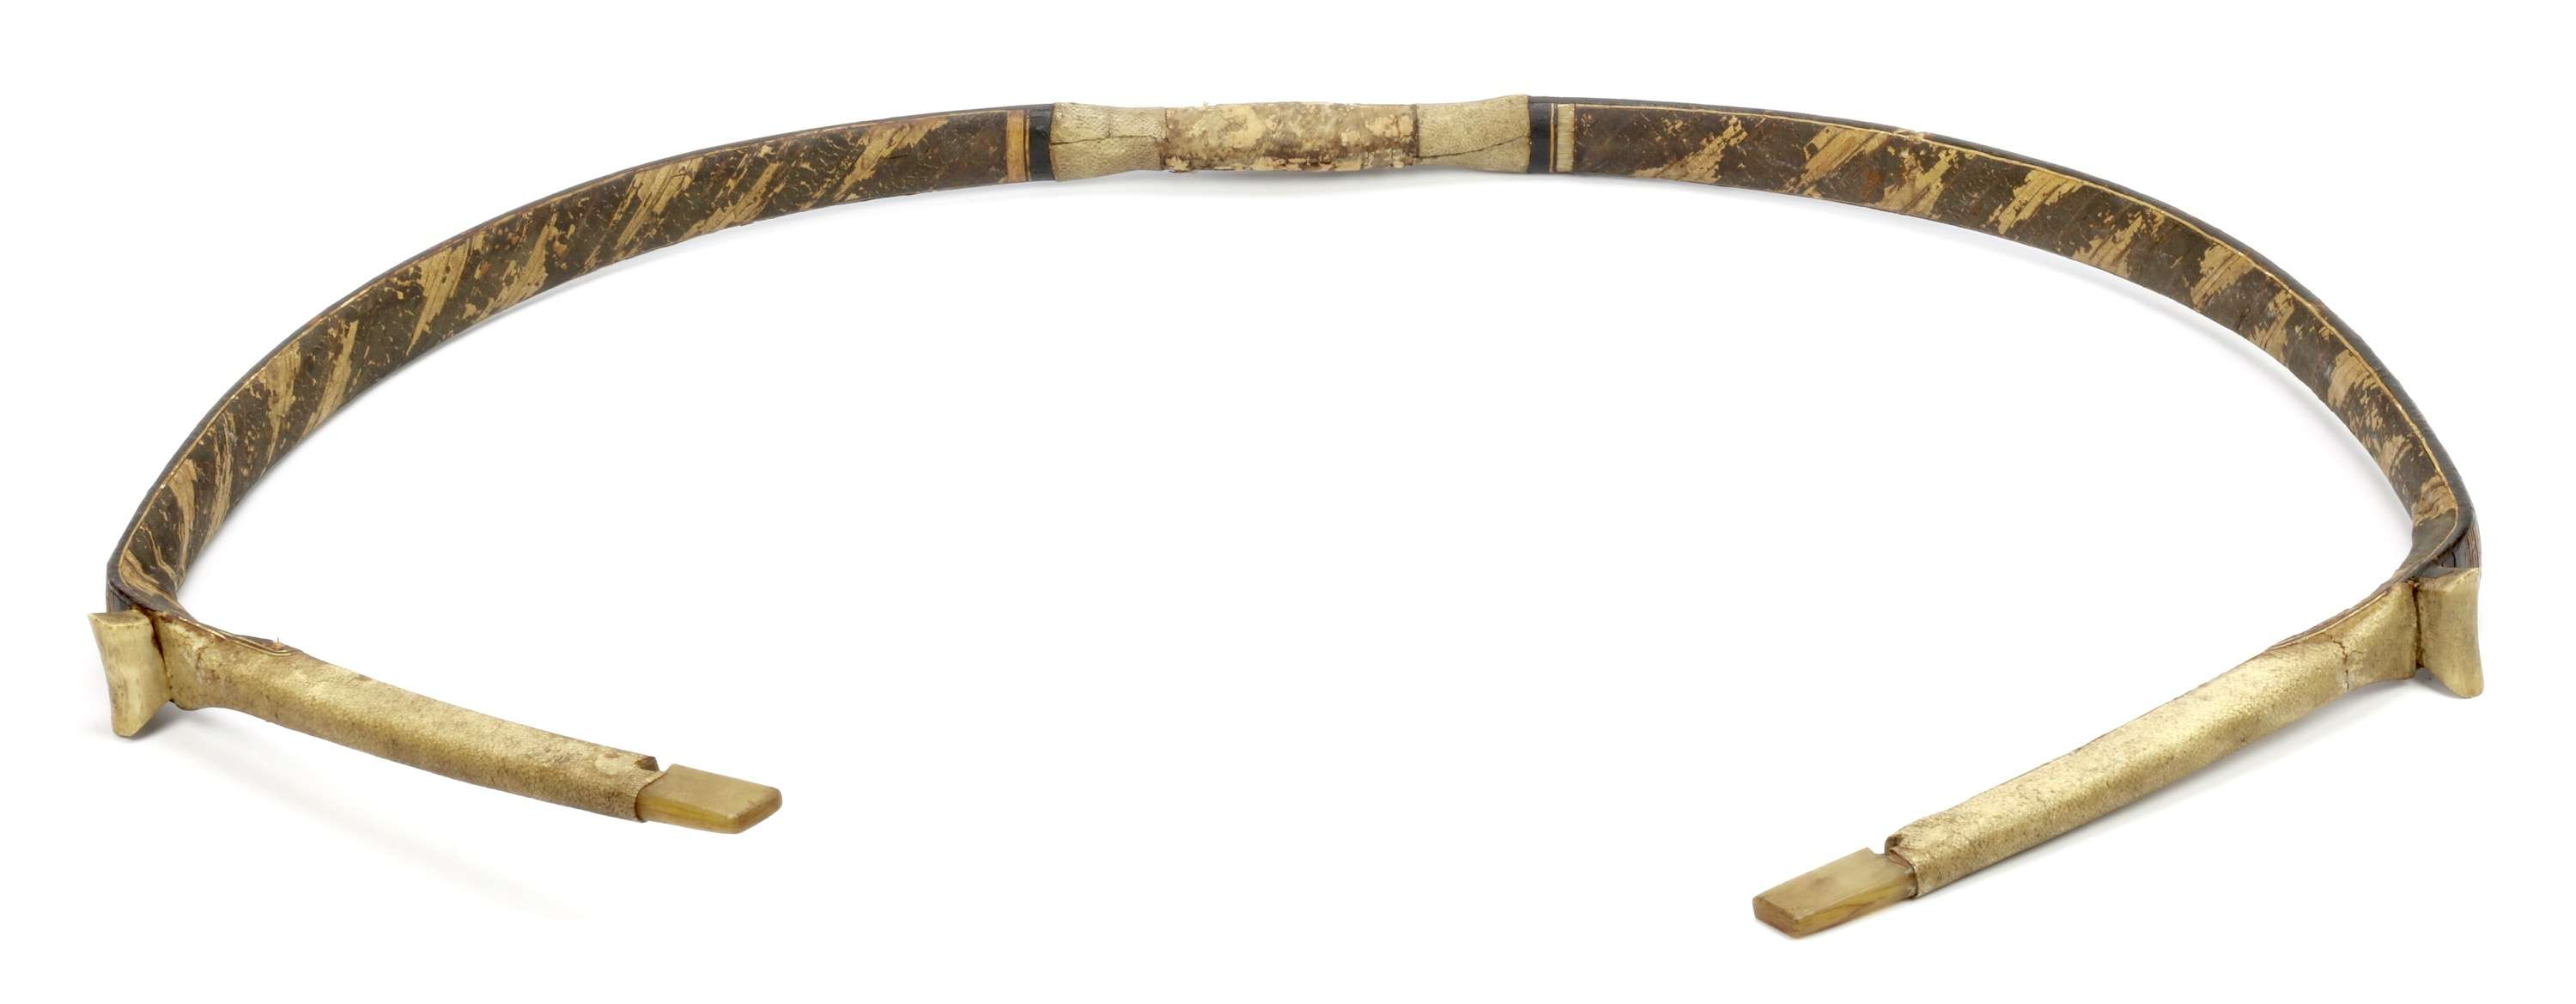 Manchu horn bow with red bellies